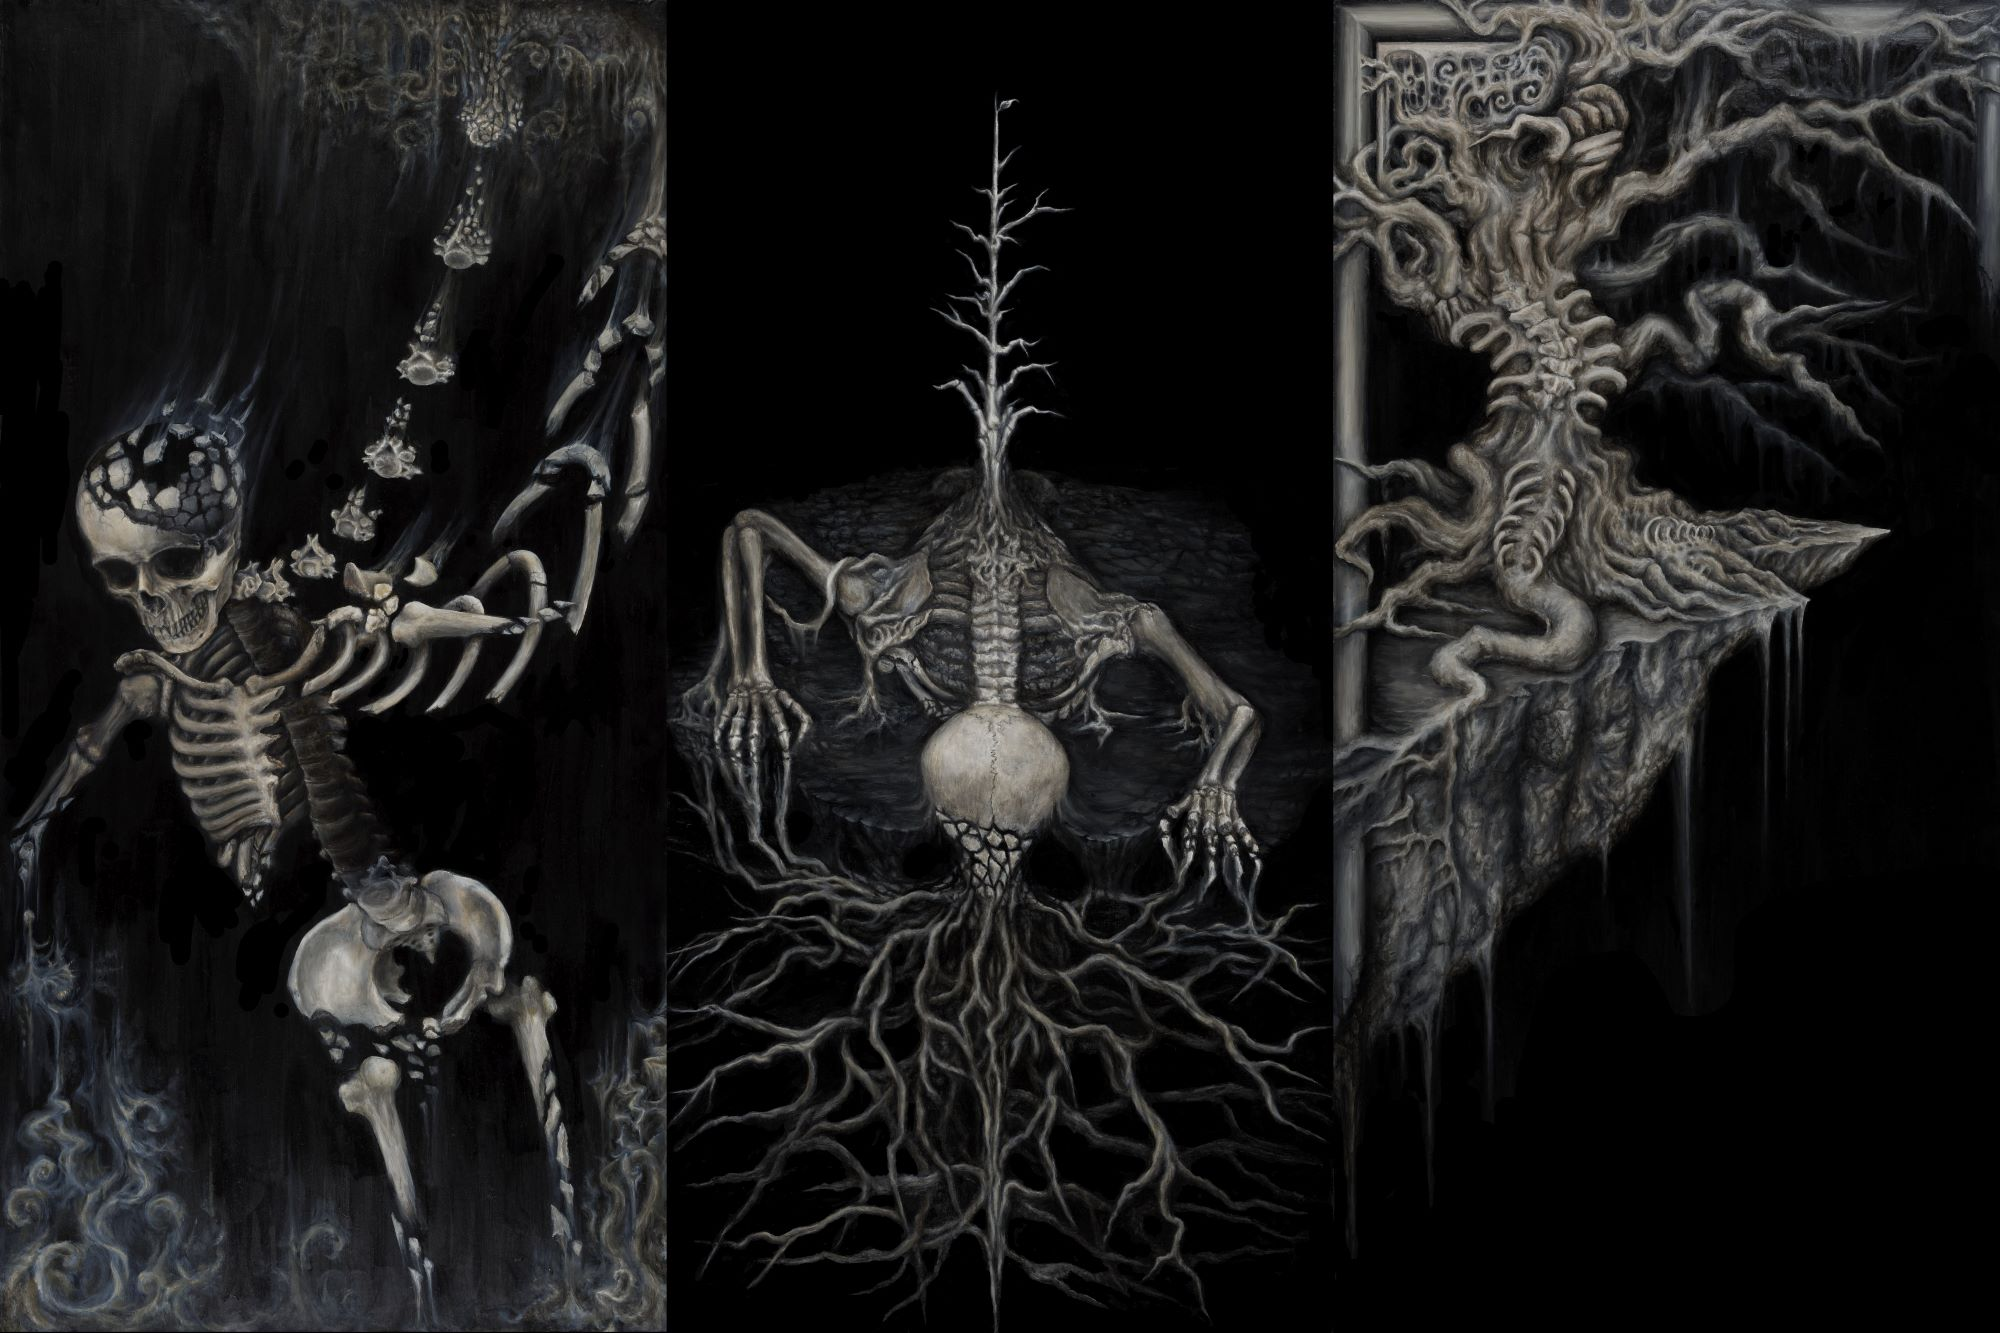 Multi-disciplinary dark artist Corviid talks about ritual and transformation during the pandemic